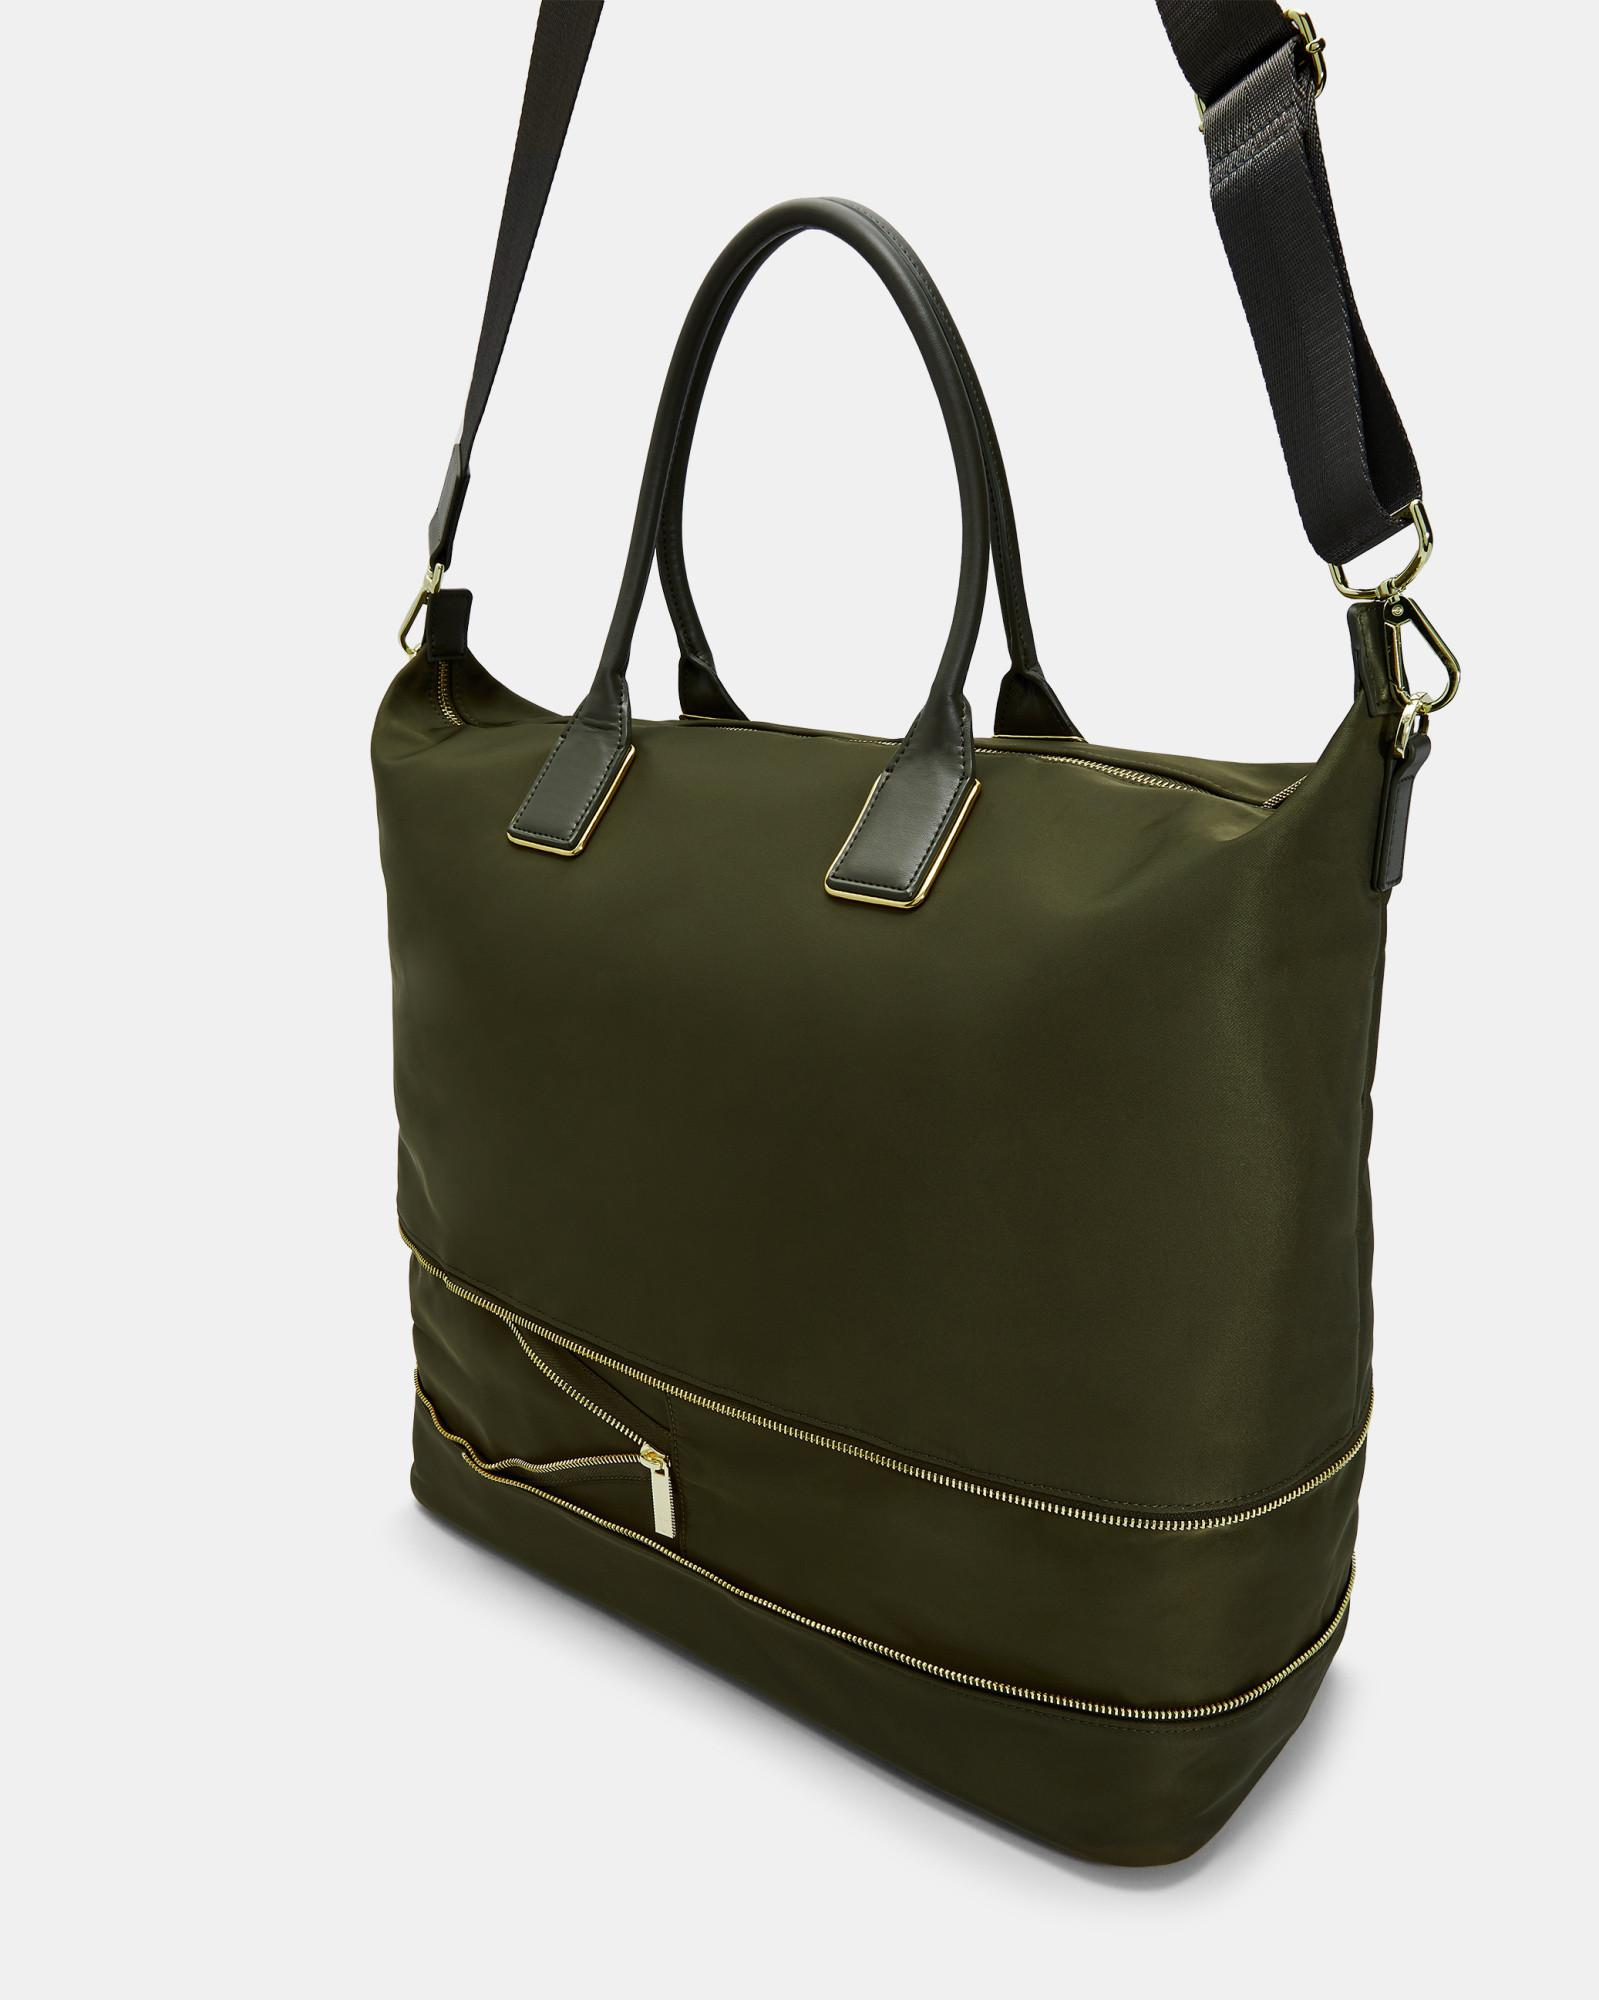 9d5736b0a9606 Lyst - Ted Baker Extendable Nylon Tote Bag in Green